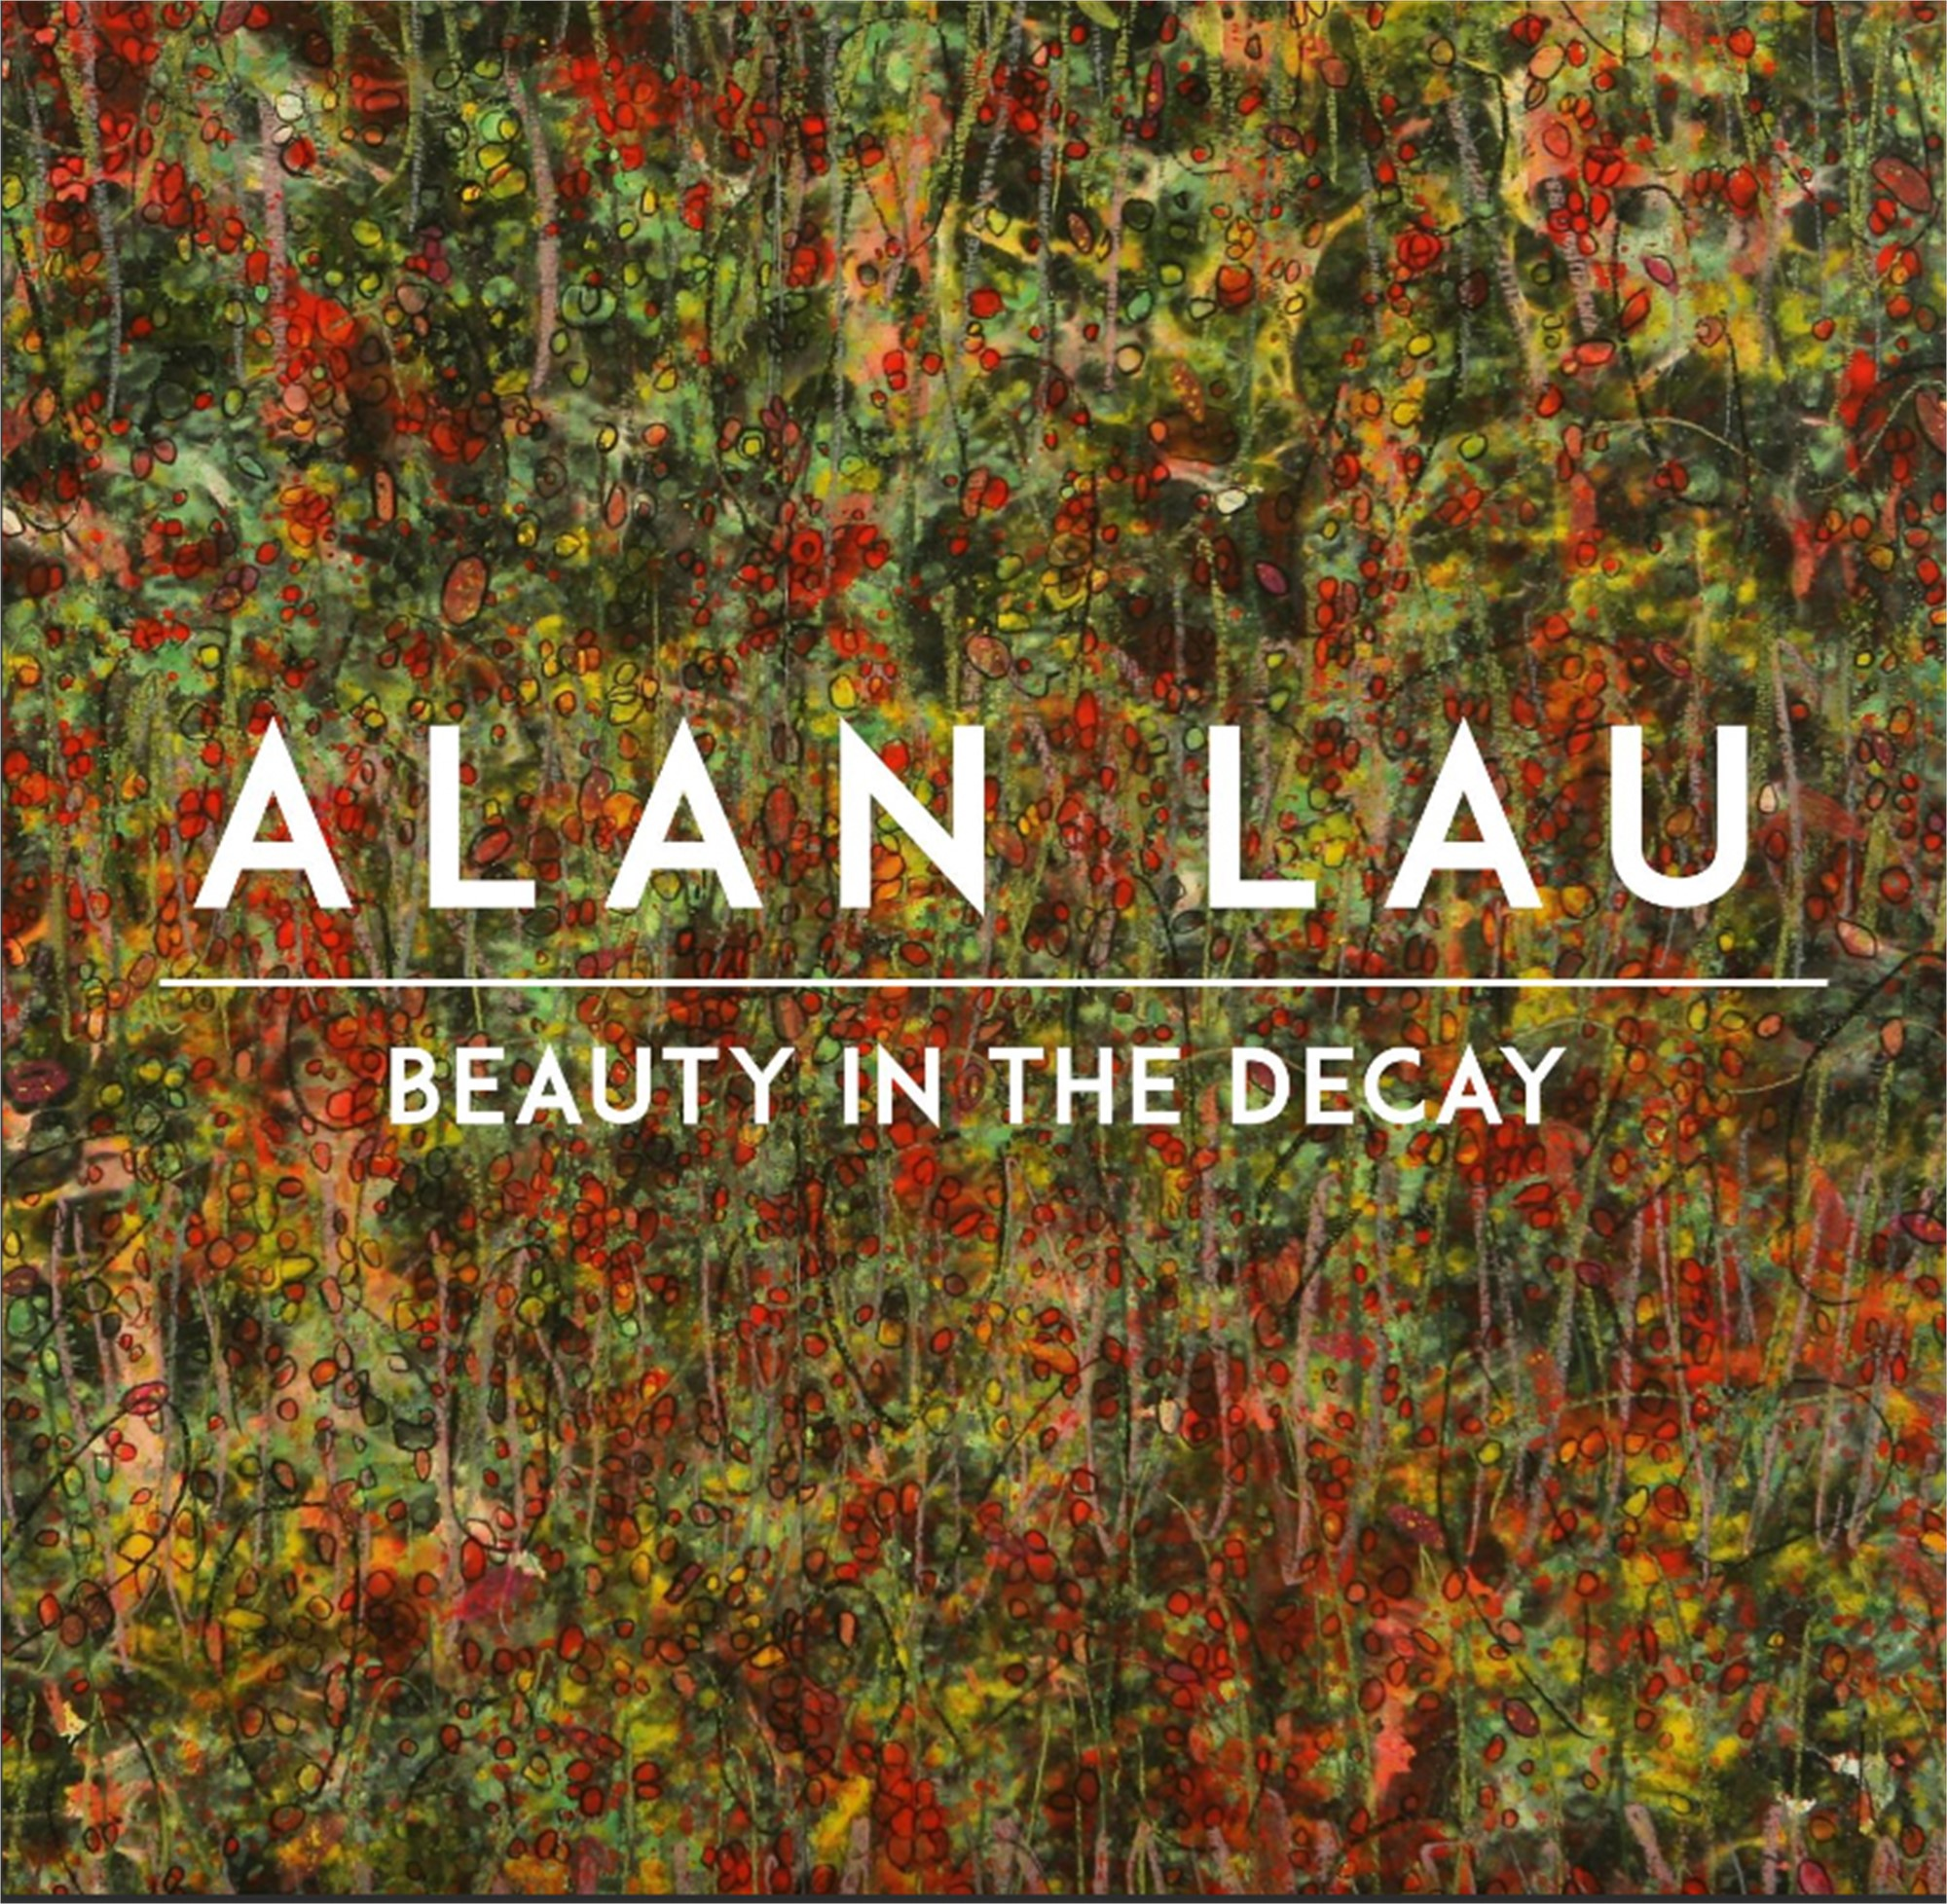 Beauty in the Decay | exhibition catalog by Alan Lau